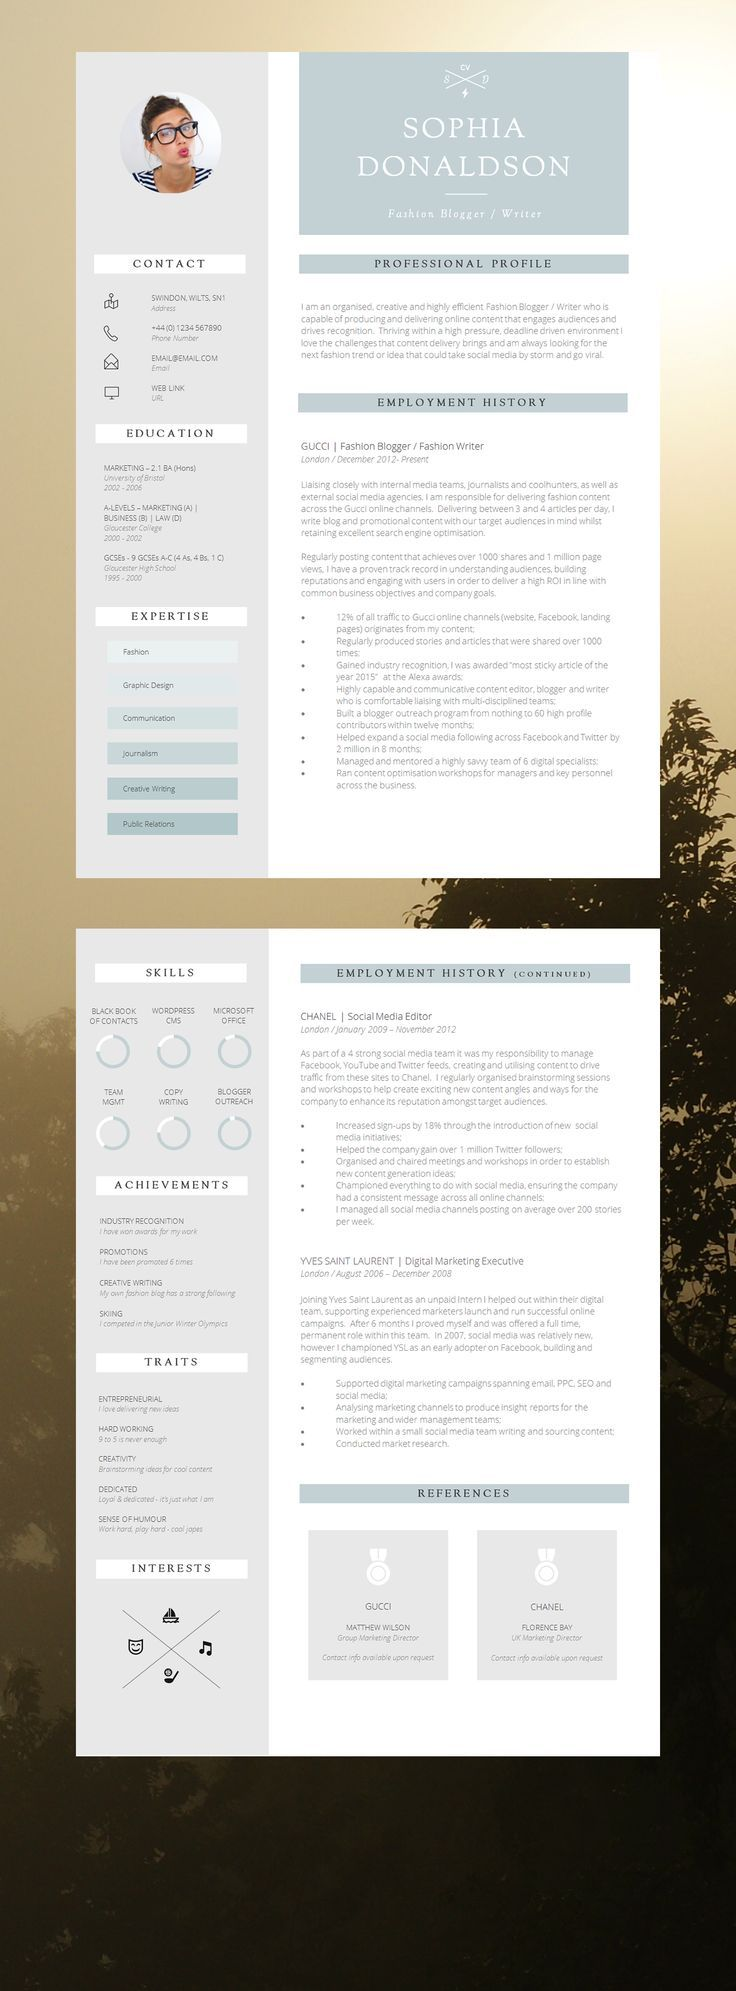 CV Template / Modern CV Design - Don't underestimate the power of a Professional CV Template! #CV #Resume #CVTemplate